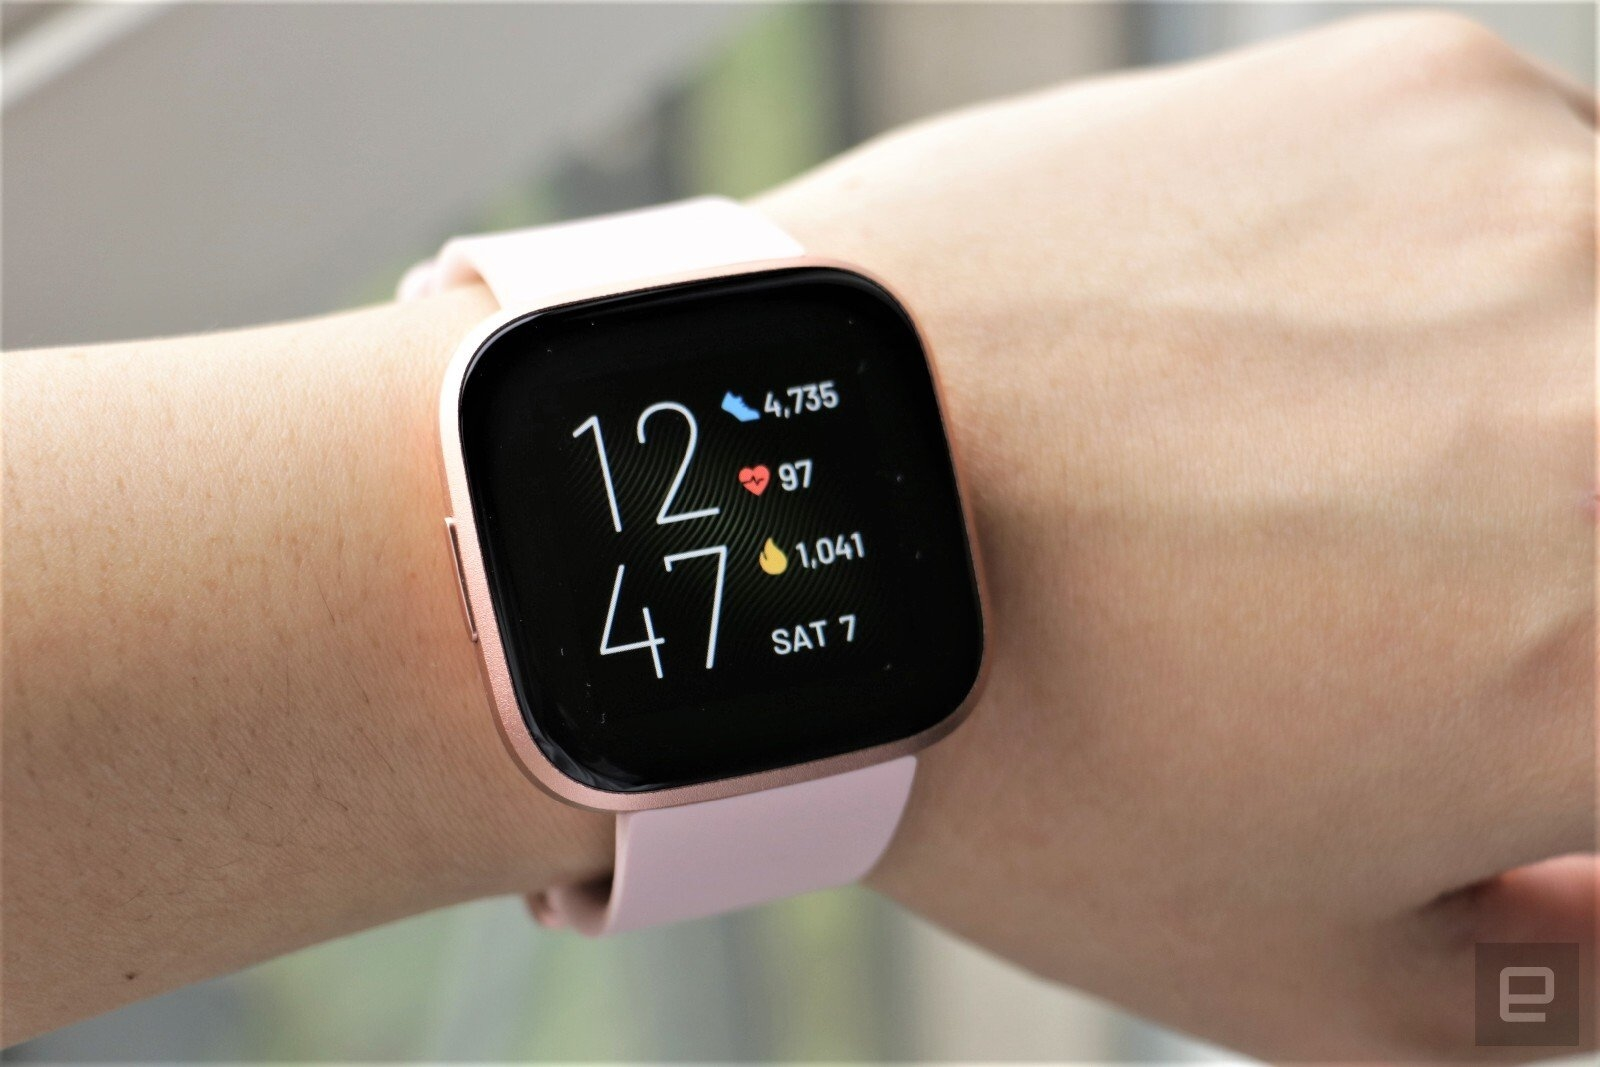 US will investigate Fitbit and Garmin following Philips complaints | DeviceDaily.com